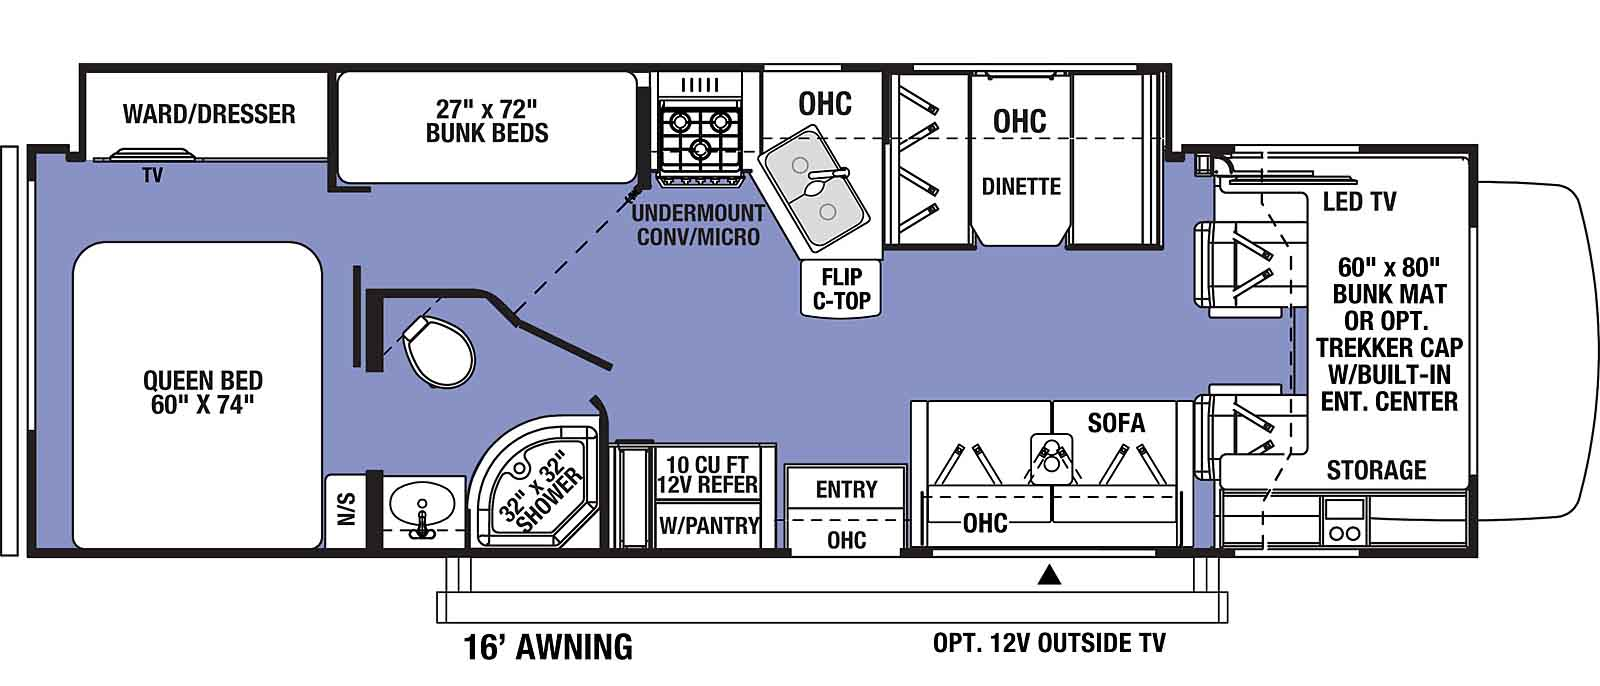 Forest River Rv Wiring Diagrams from forestriverinc.com